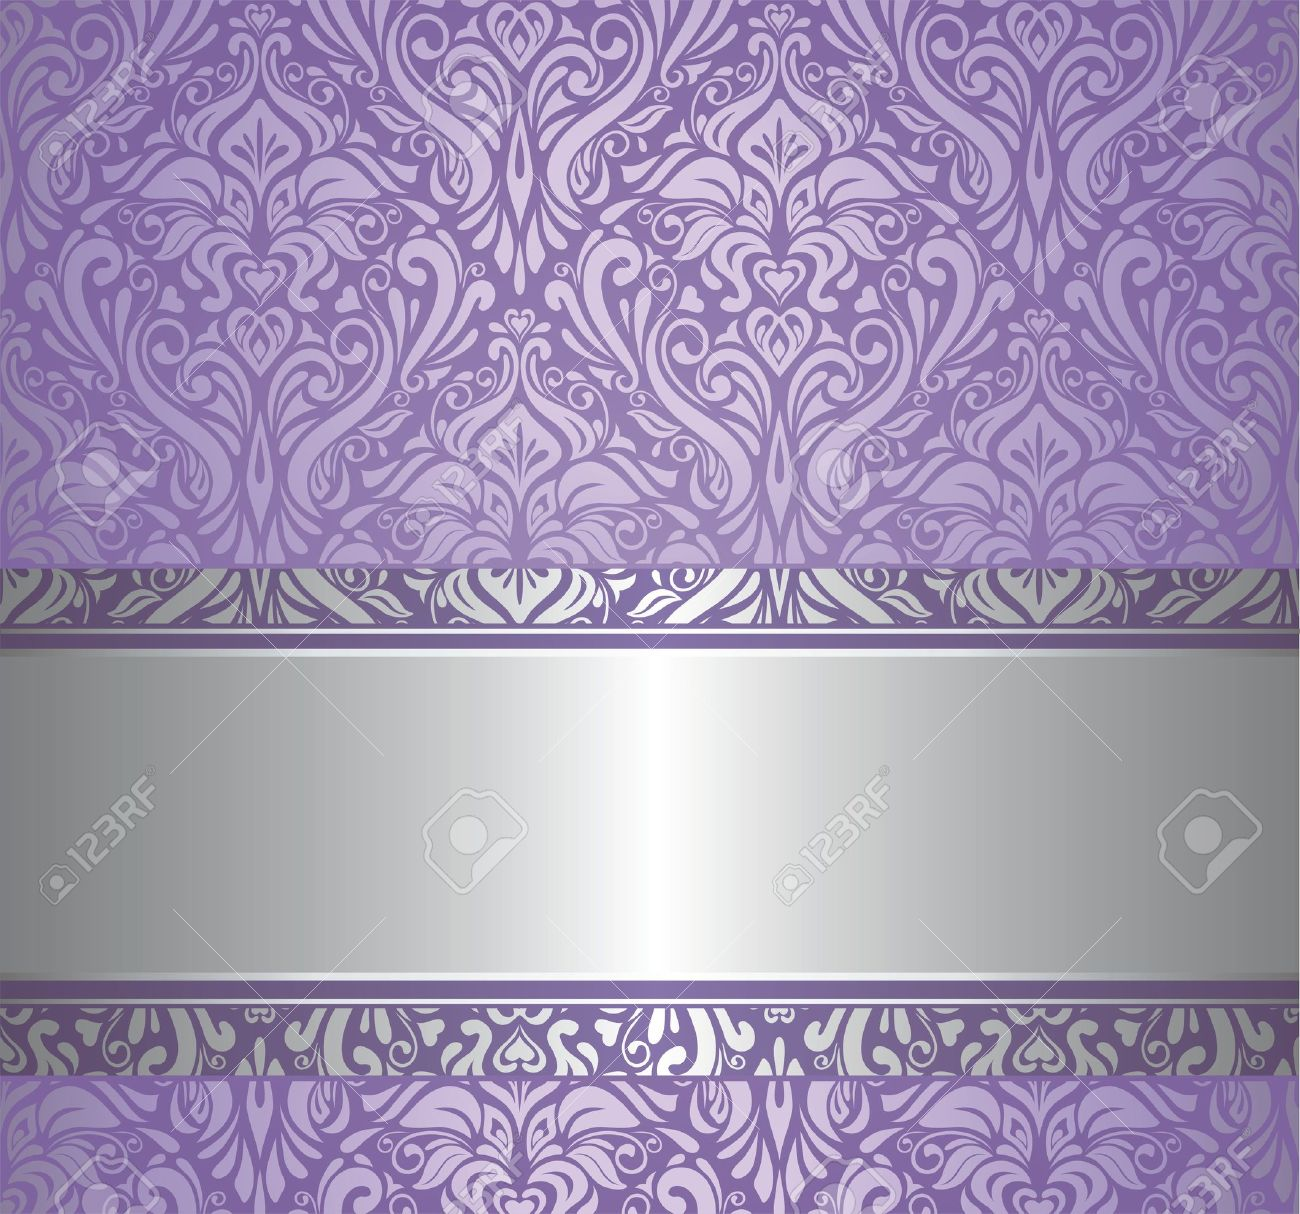 3d Fish Live Wallpaper For Android Download Purple And Silver Wallpaper Gallery